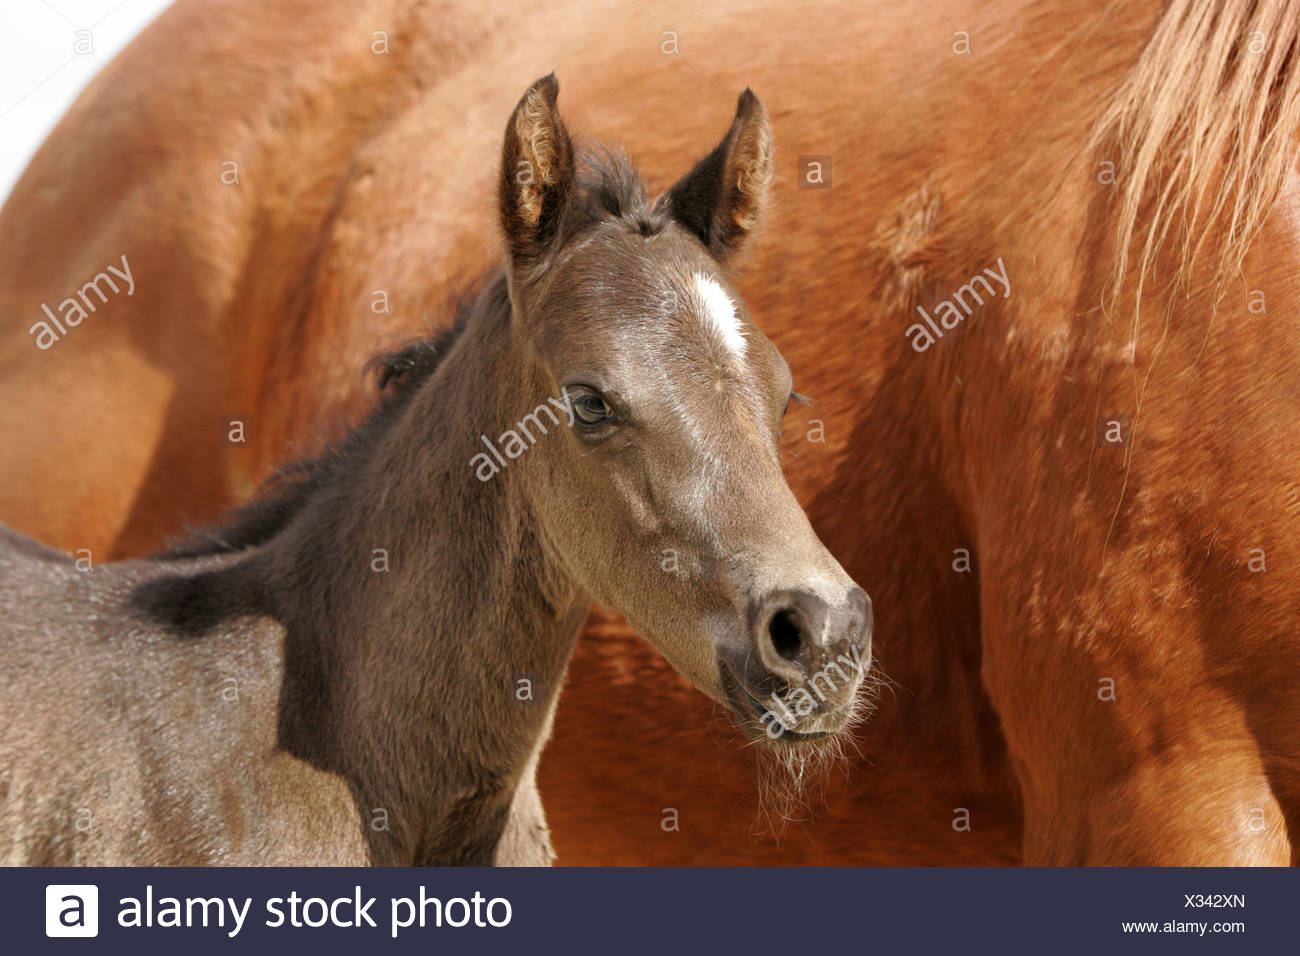 Quarter Horse Foal Stock Photo